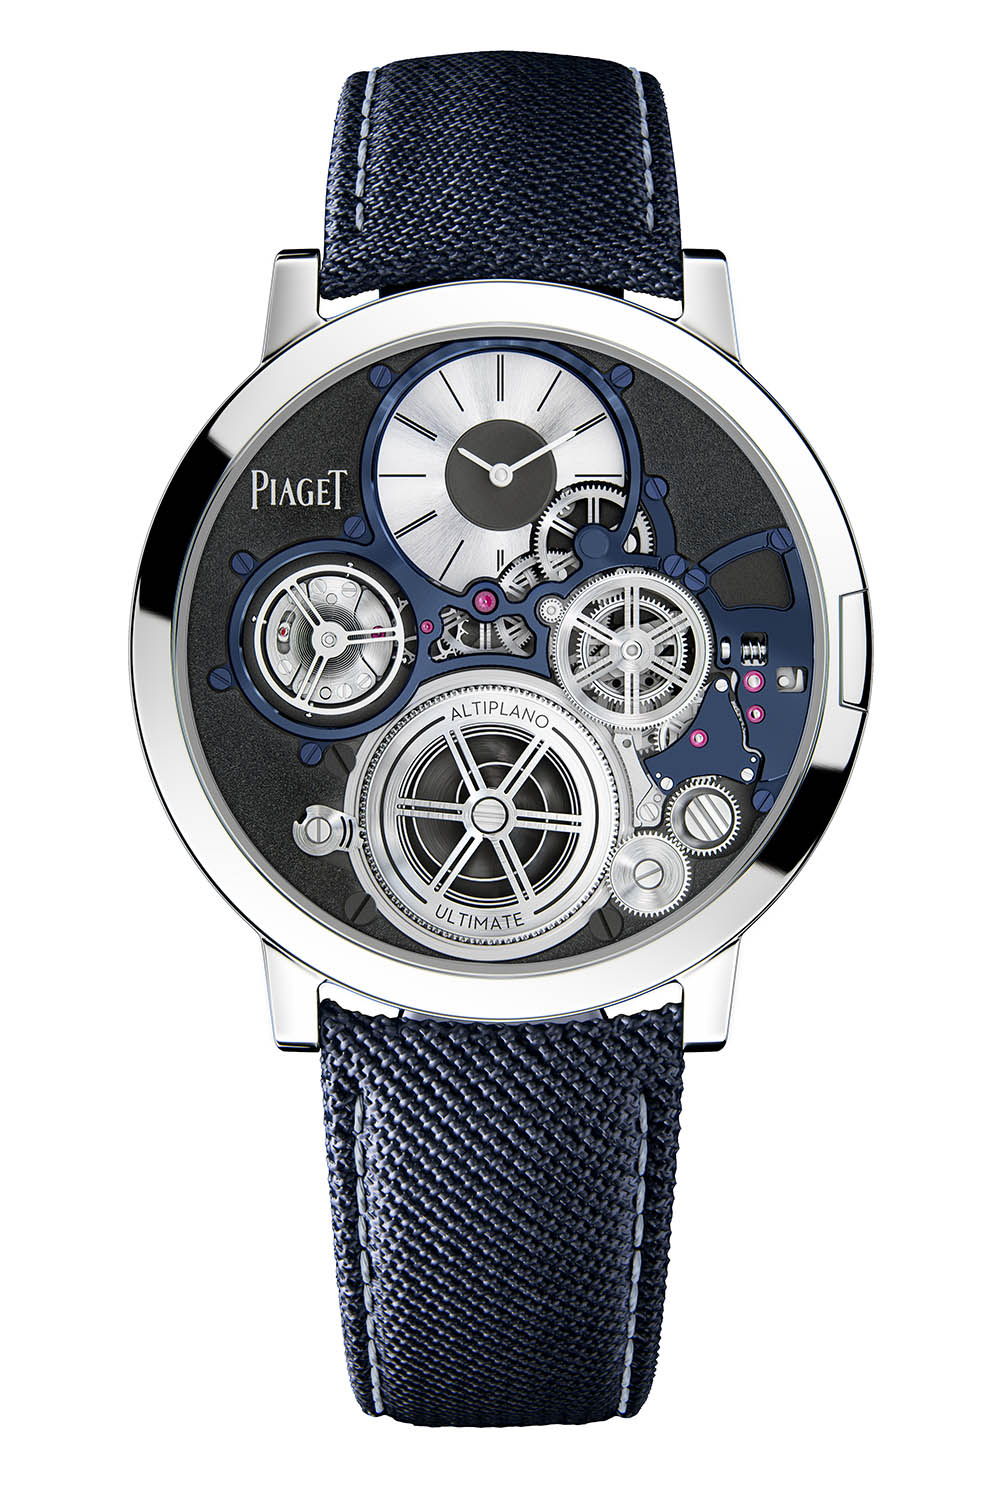 Piaget Altiplano Ultimate Concept 2020 - 6